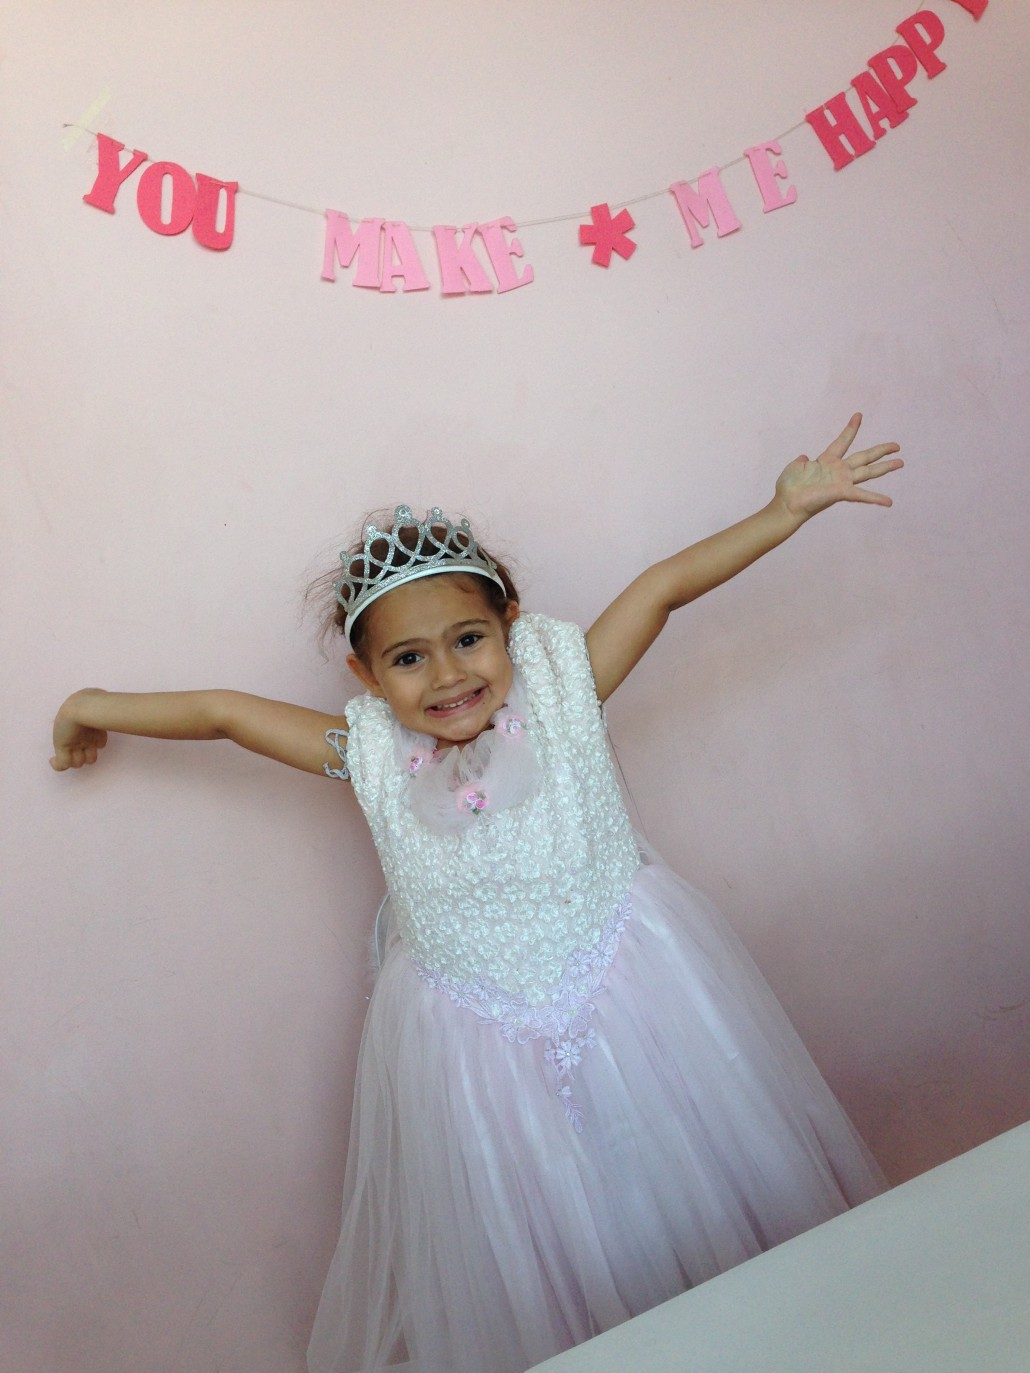 dressing up as a princess in Cafe Tiala